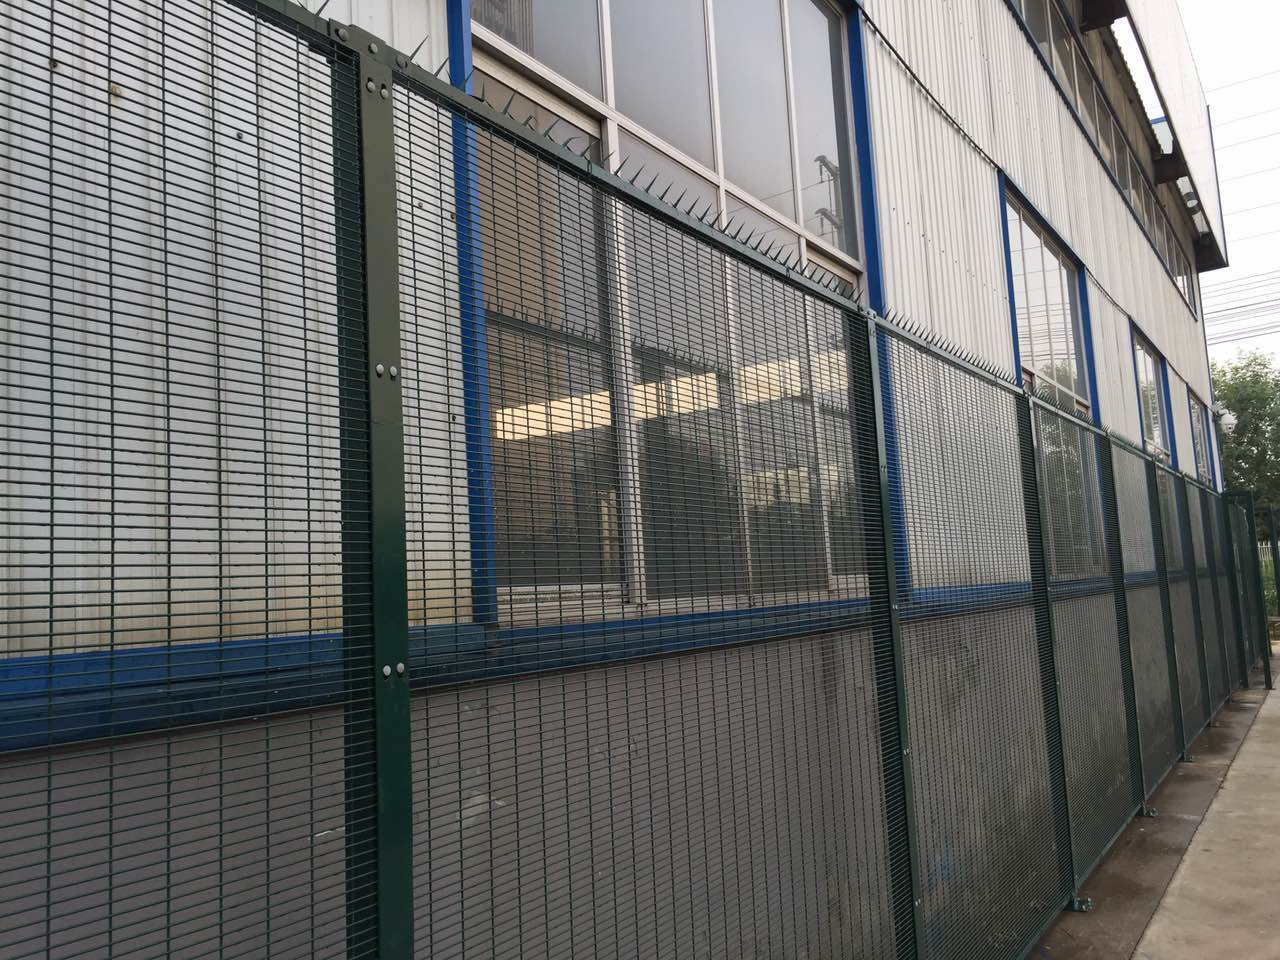 358 wire mesh fence (2)